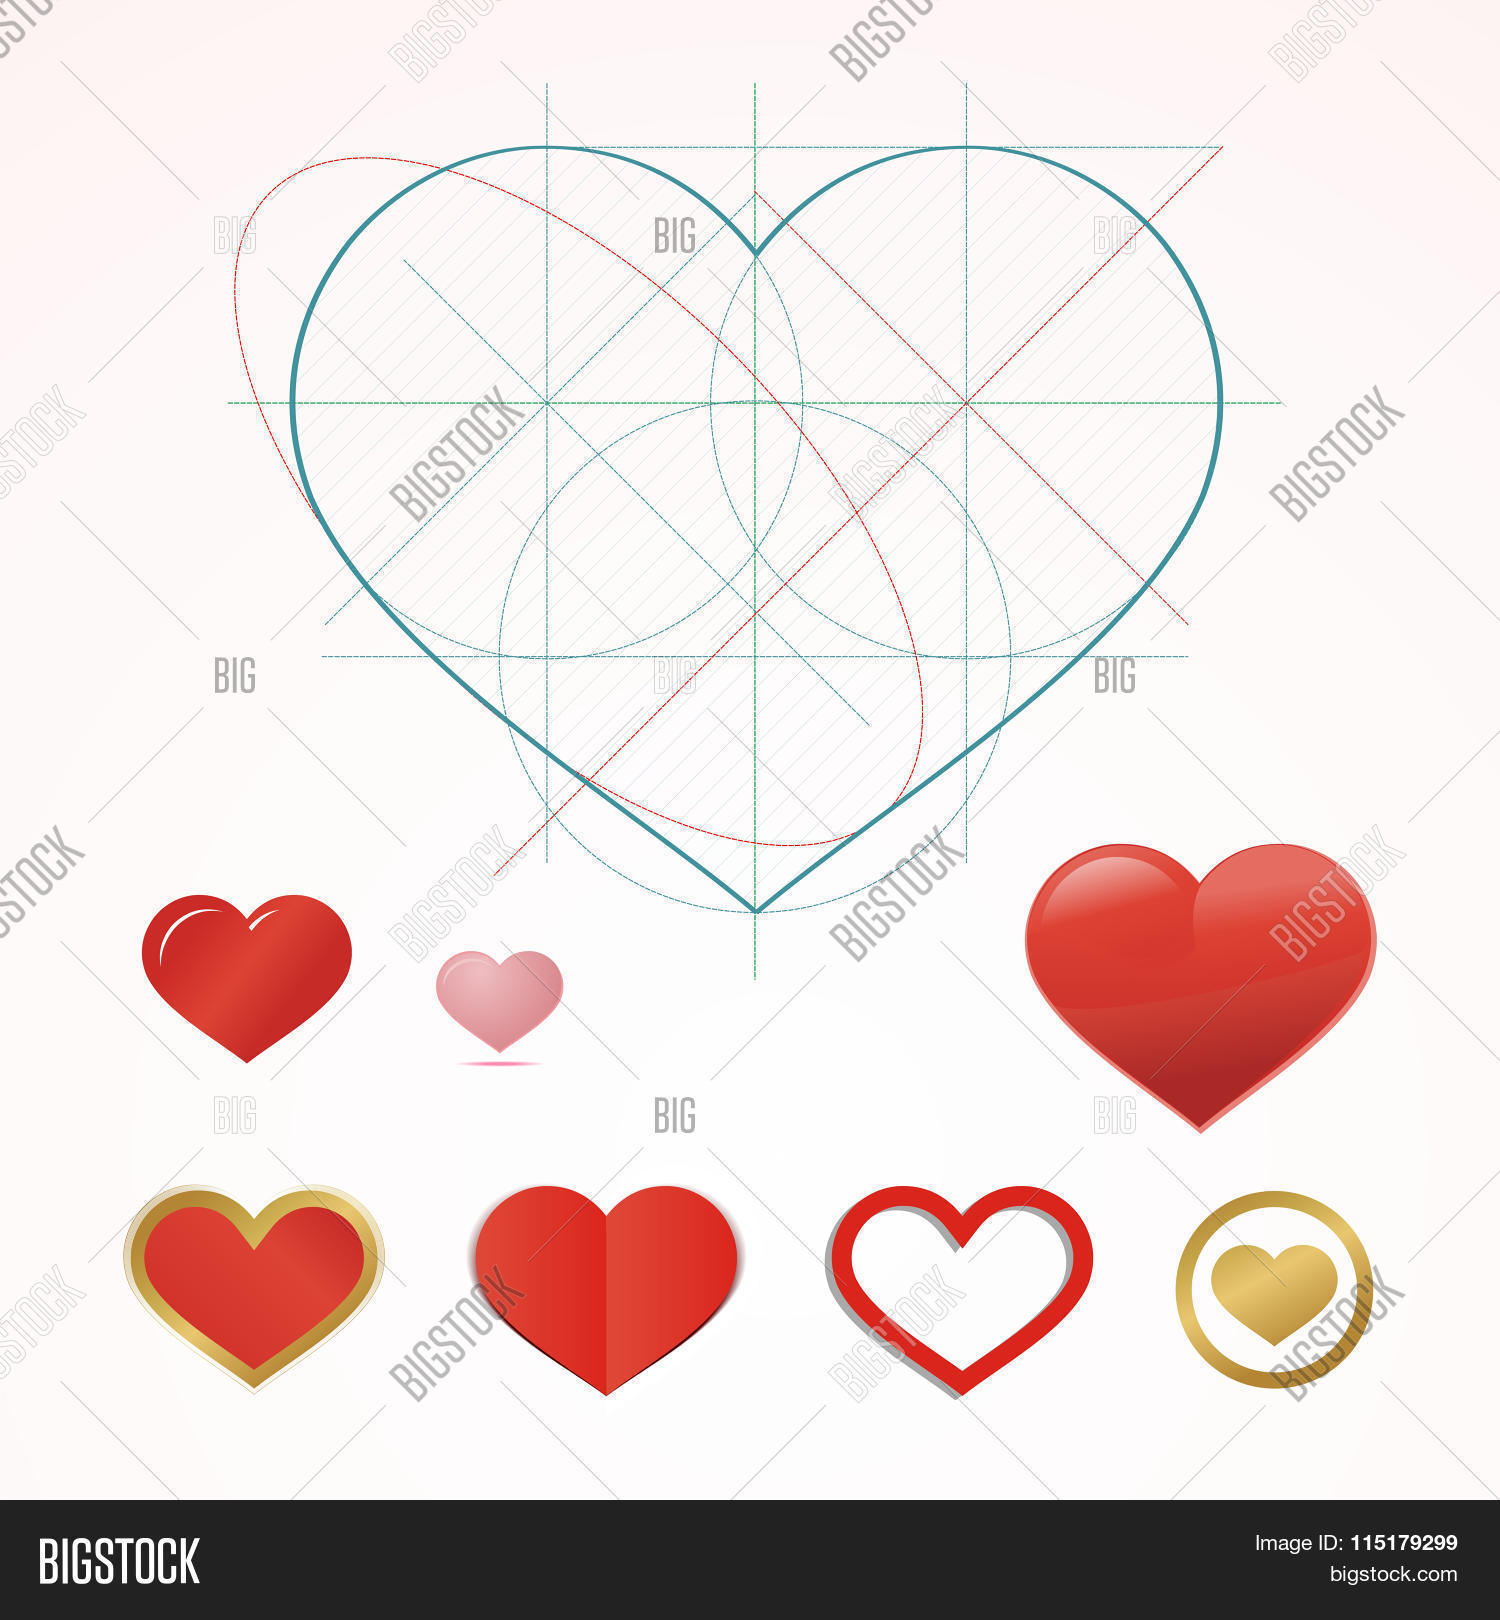 Heart symbol dimension lines vector photo bigstock heart symbol with dimension lines element of blueprint drawing in shape of heart qualitative buycottarizona Image collections